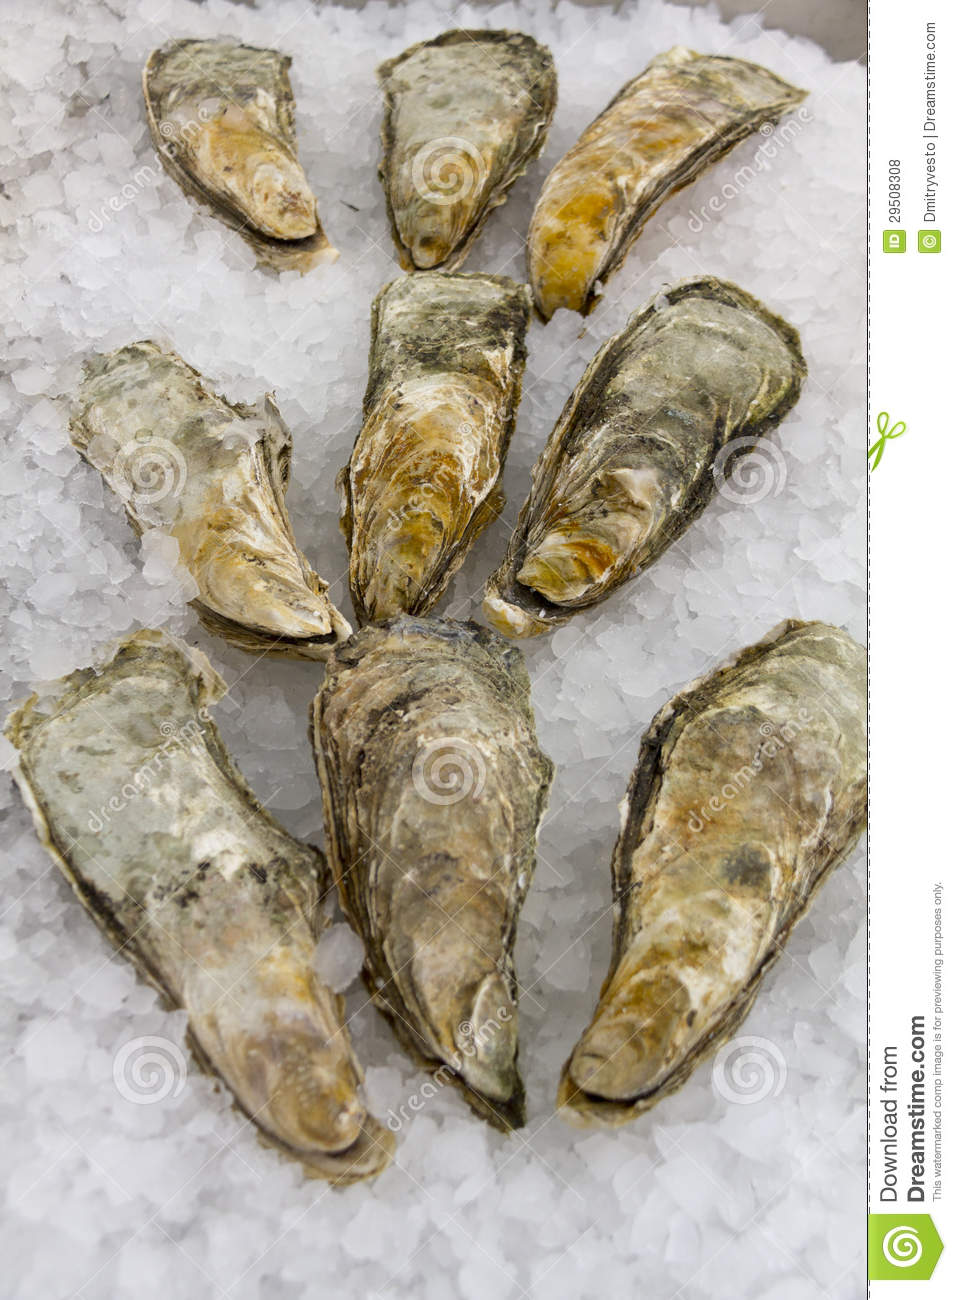 Oesters in ijs